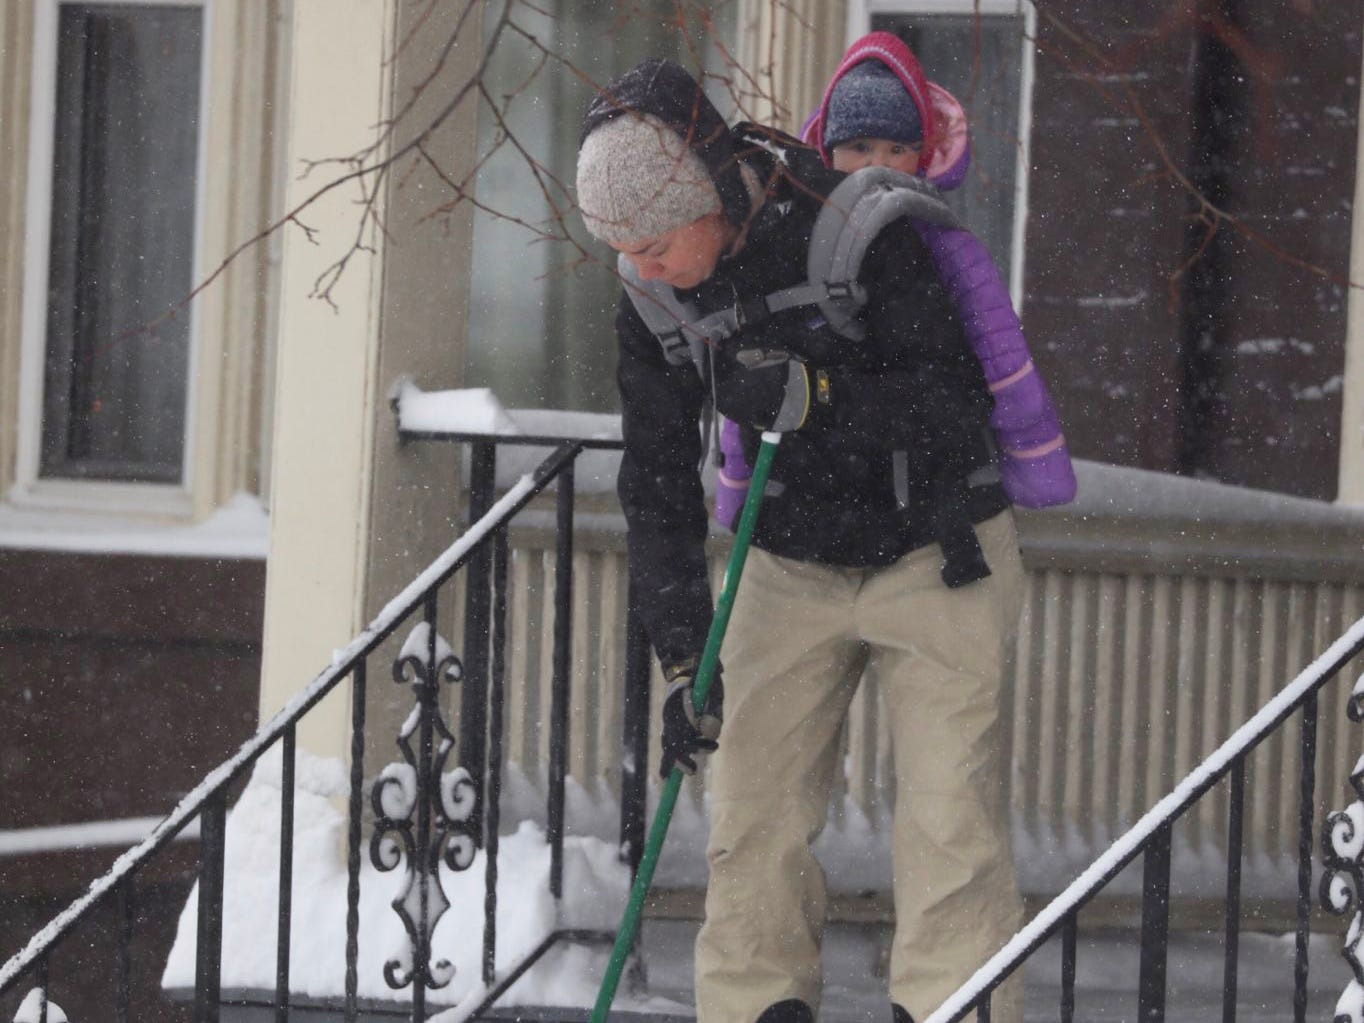 Carin LeFevre sweeps the stairs of her Monroe Avenue home with her daughter, Cora McCormick, on her back.